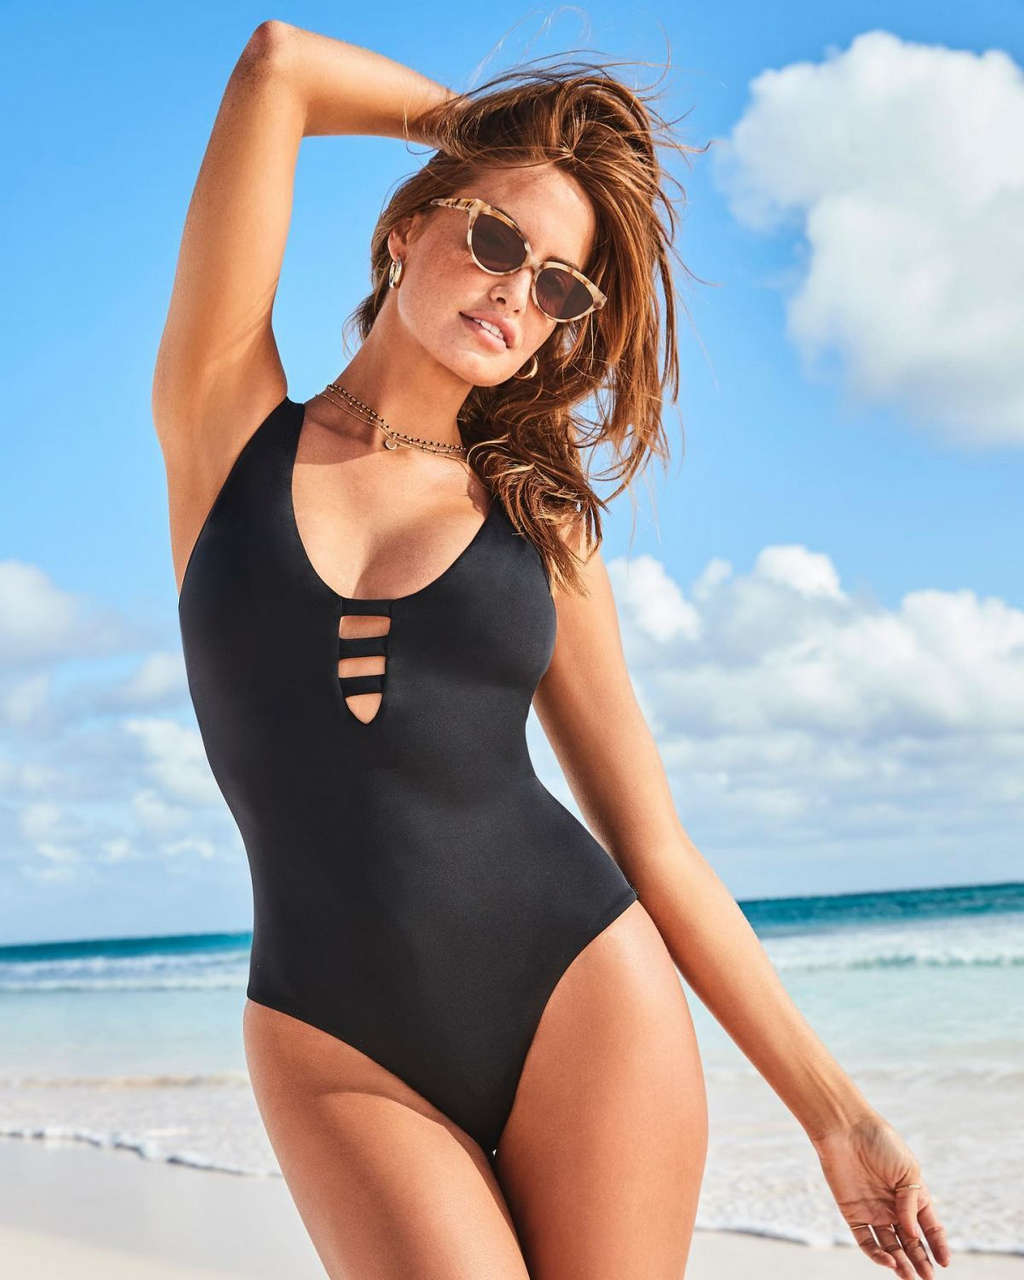 Haley Kalil For Swimsuits For All